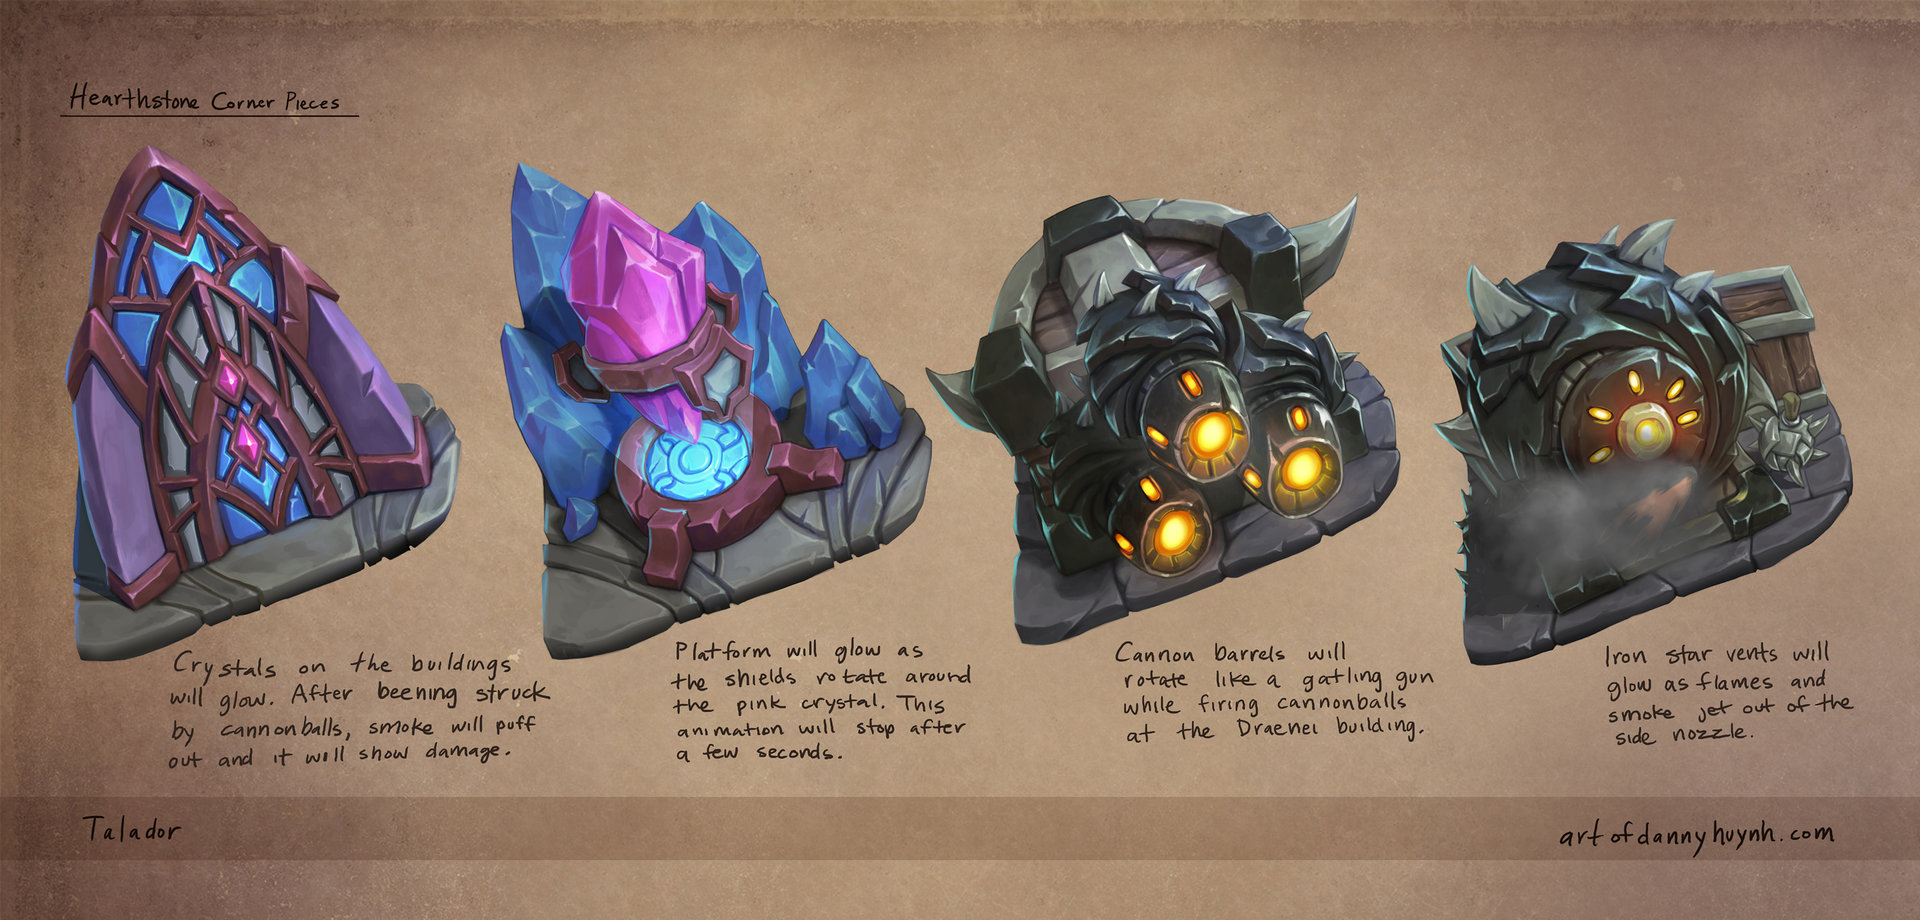 Concepts of cornerstones for Talador.